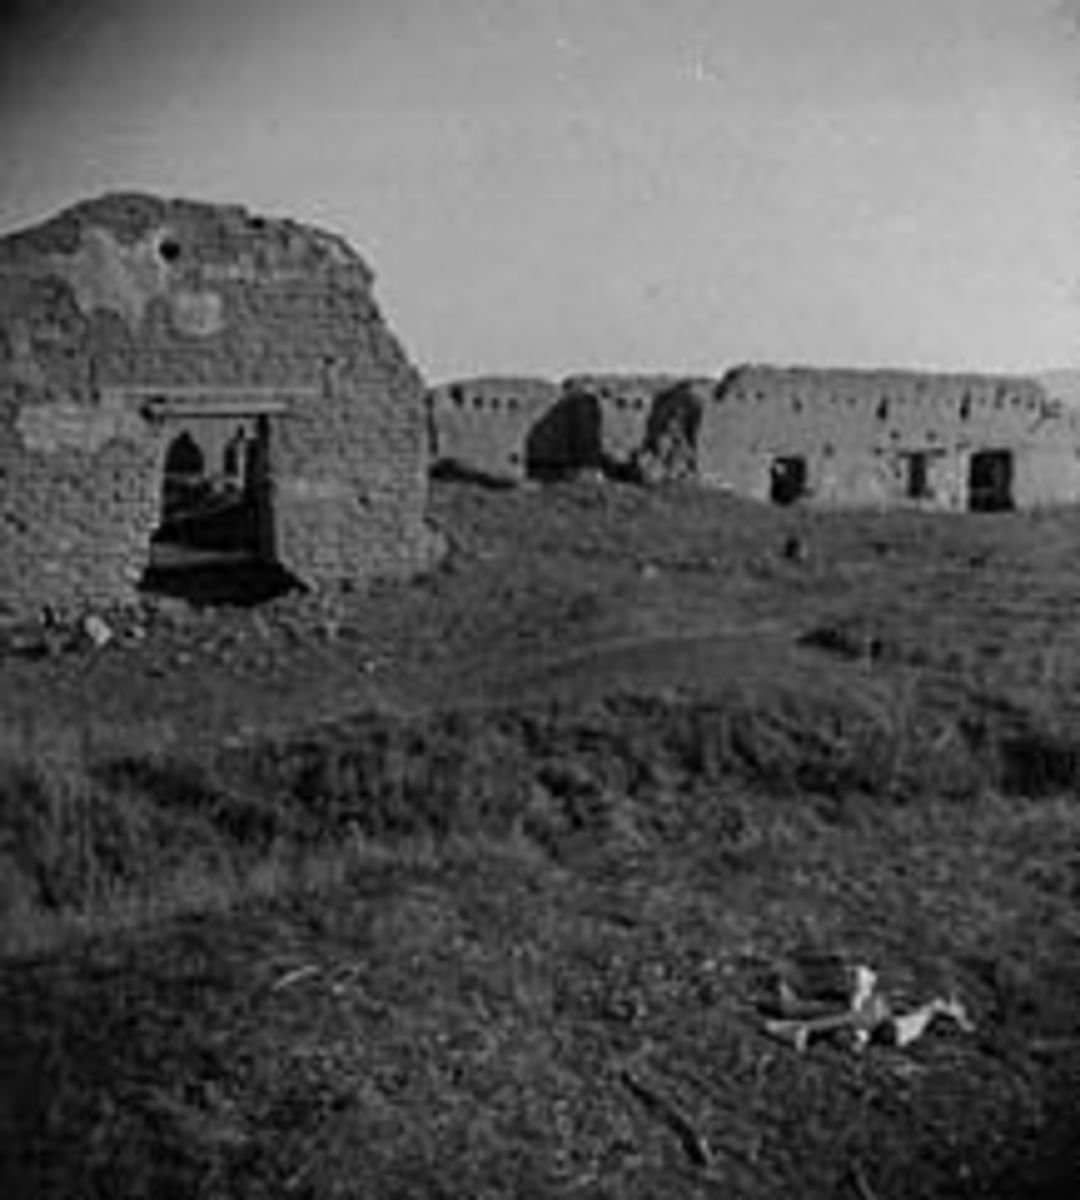 Ruins of Mission Soledad, near Salinas California (c. 1900). The mission was rebuilt in 1954 with funds provided by the Native Daughters of the Golden West.